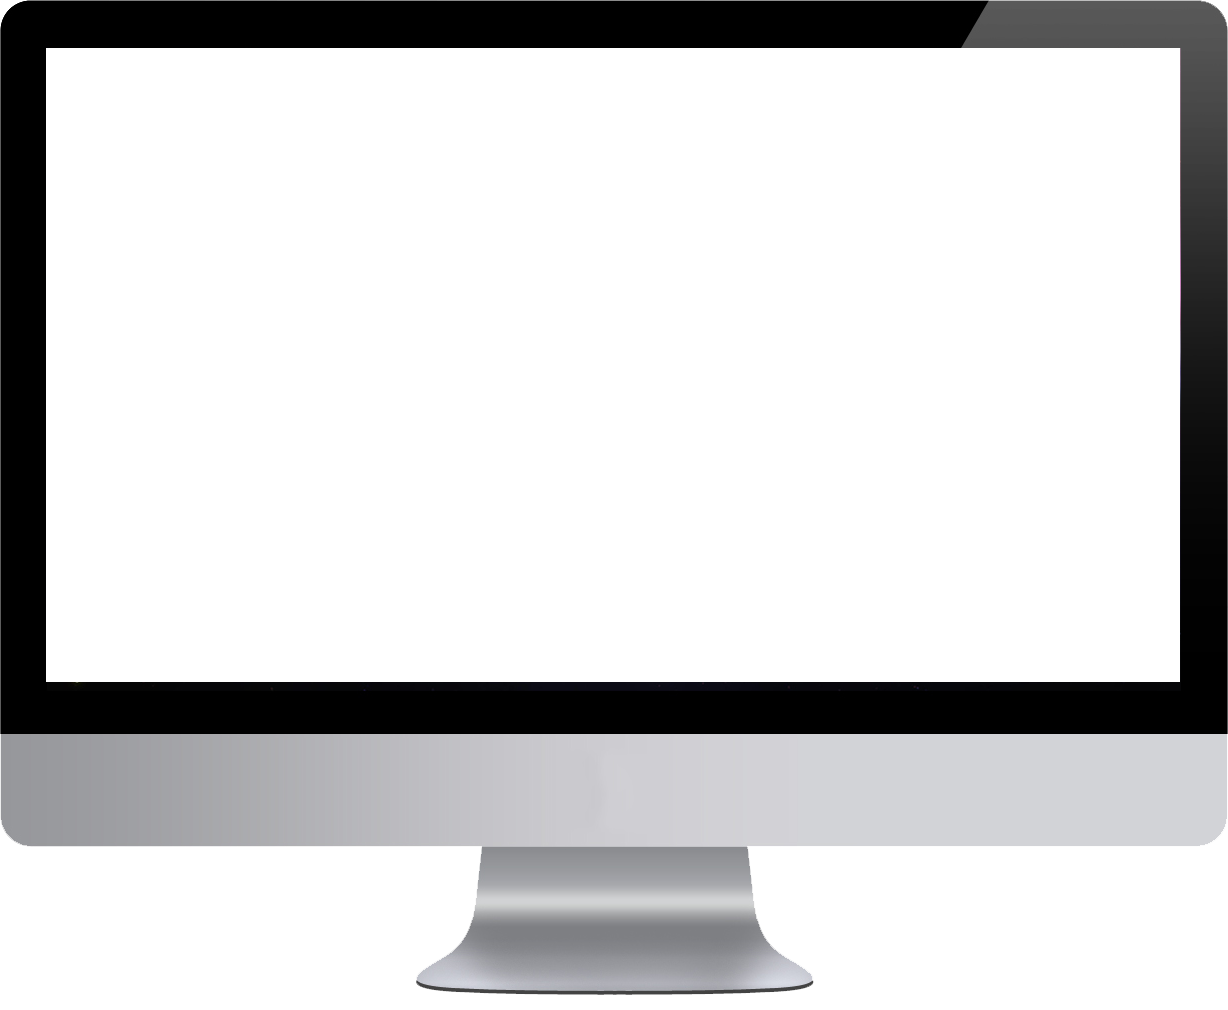 PC Computer Screen PNG image #39901